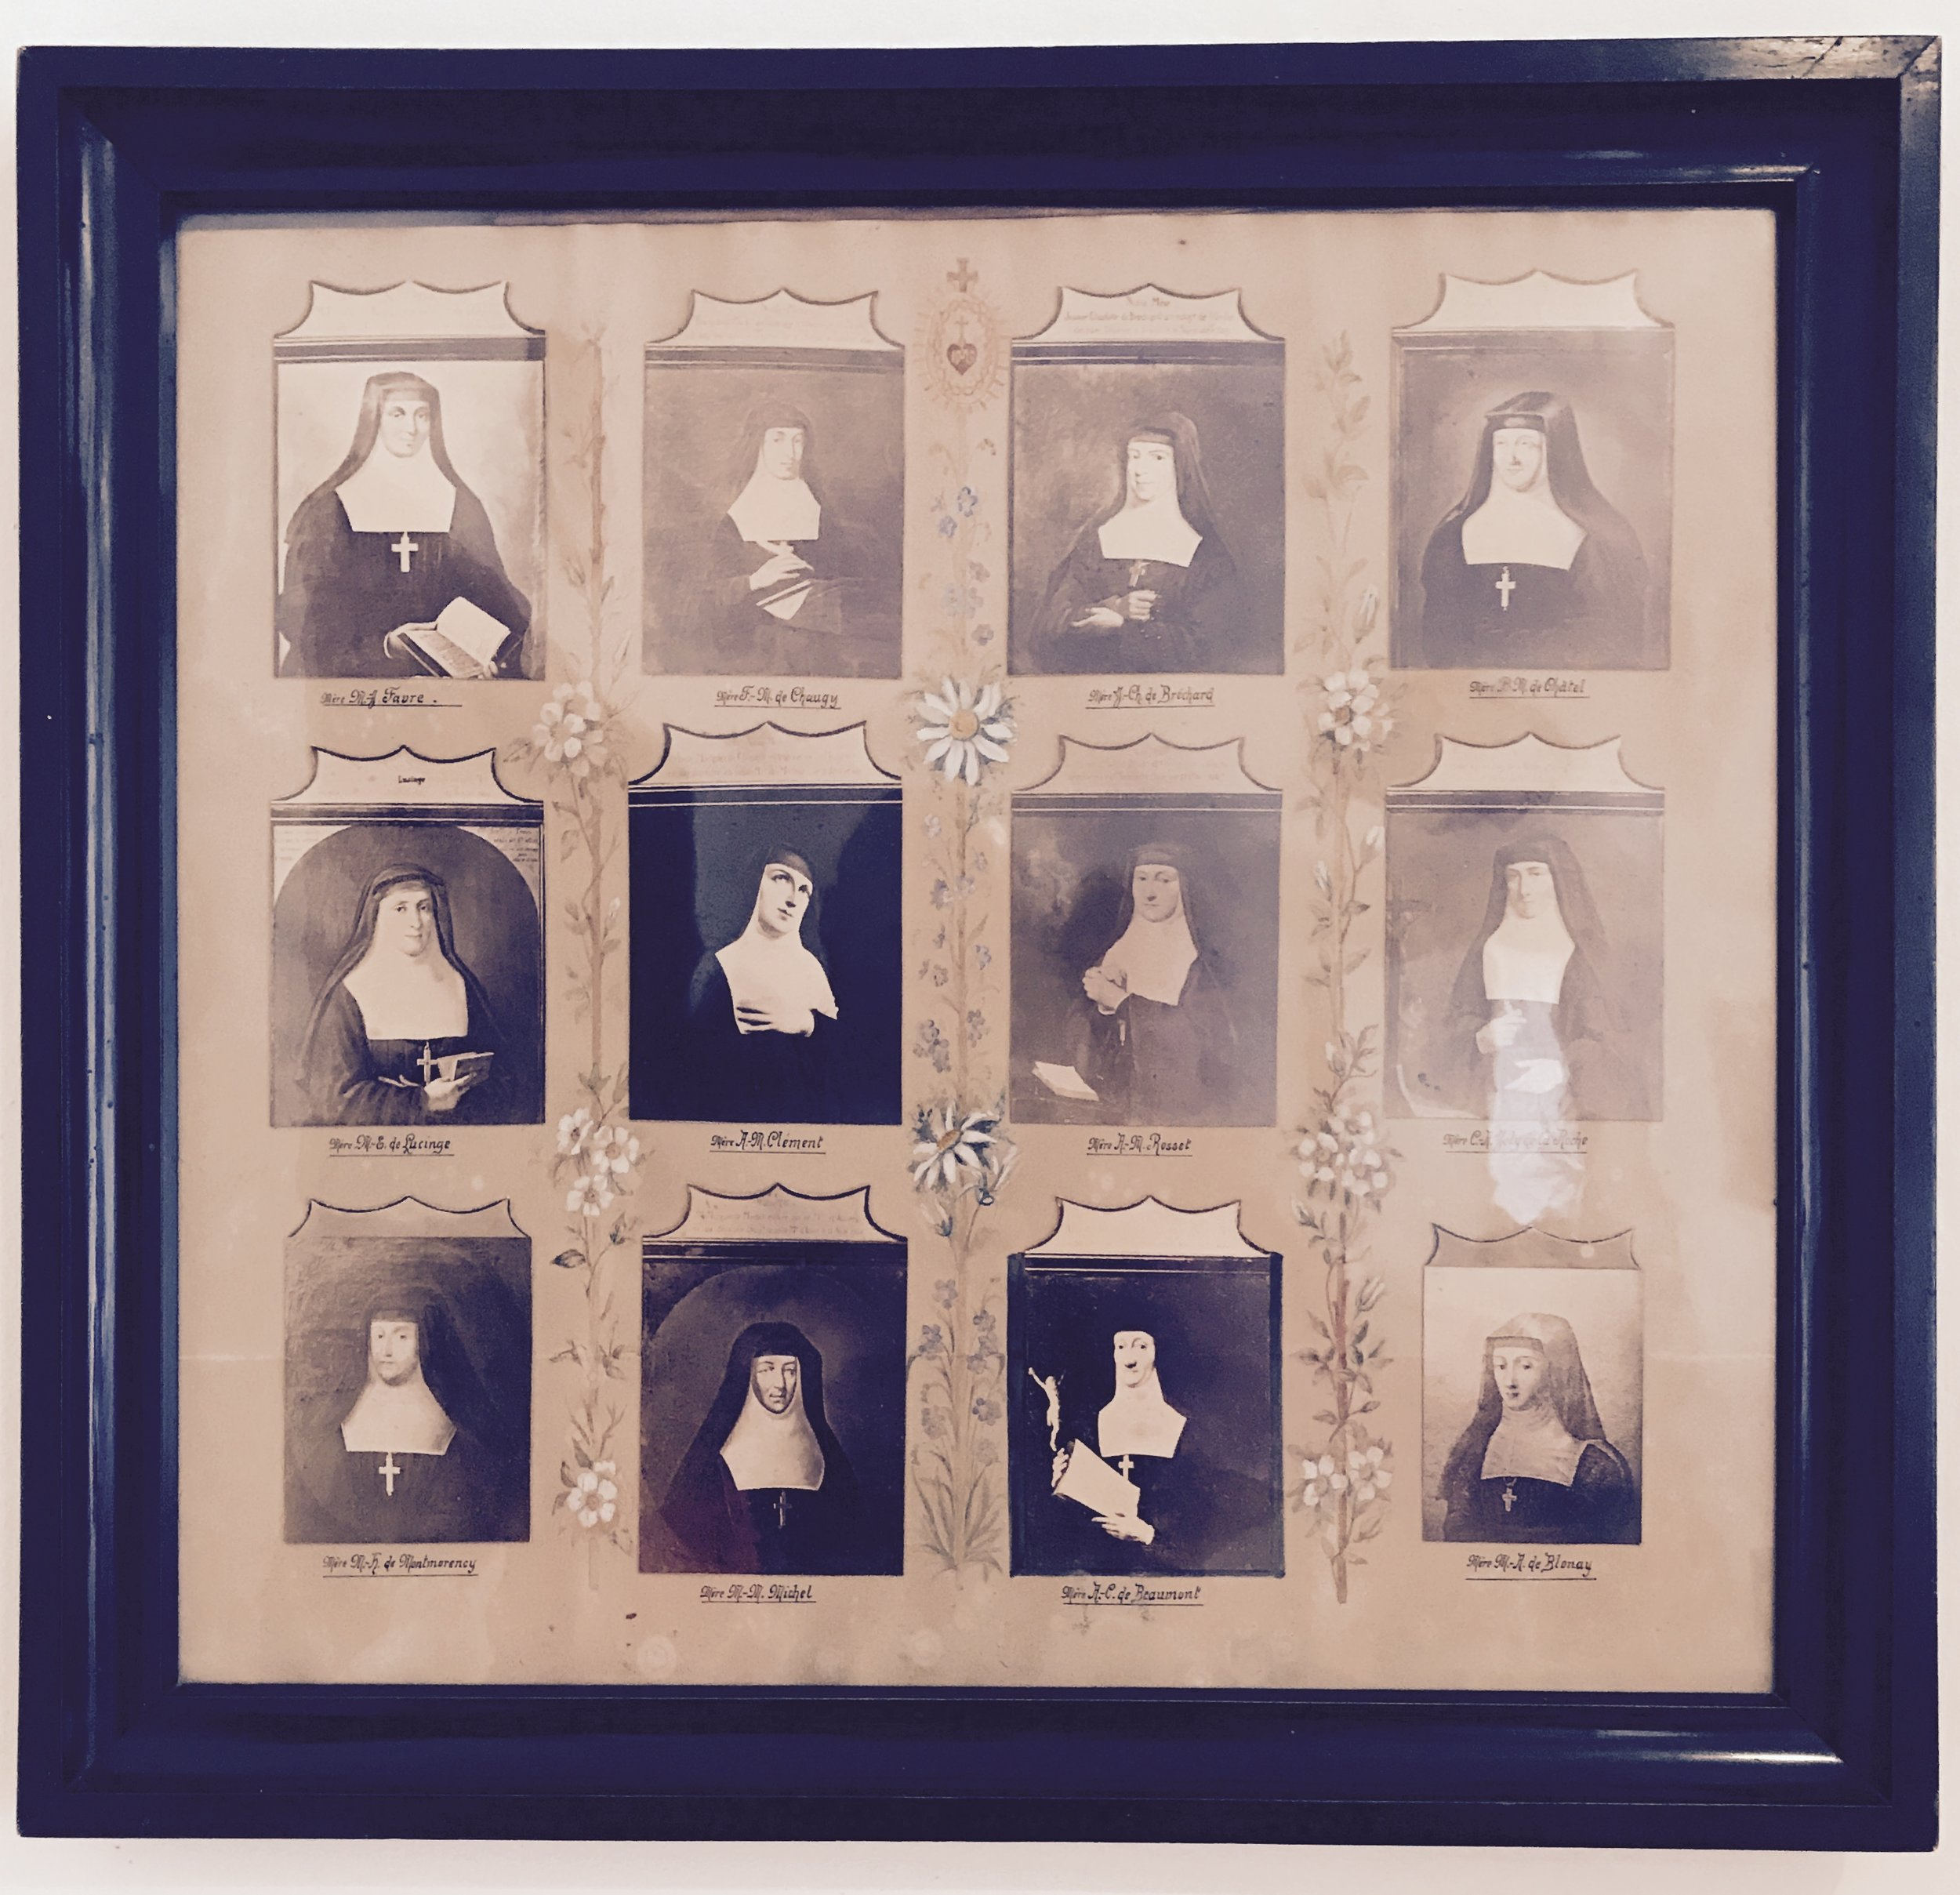 Images of nuns of the Salesian order